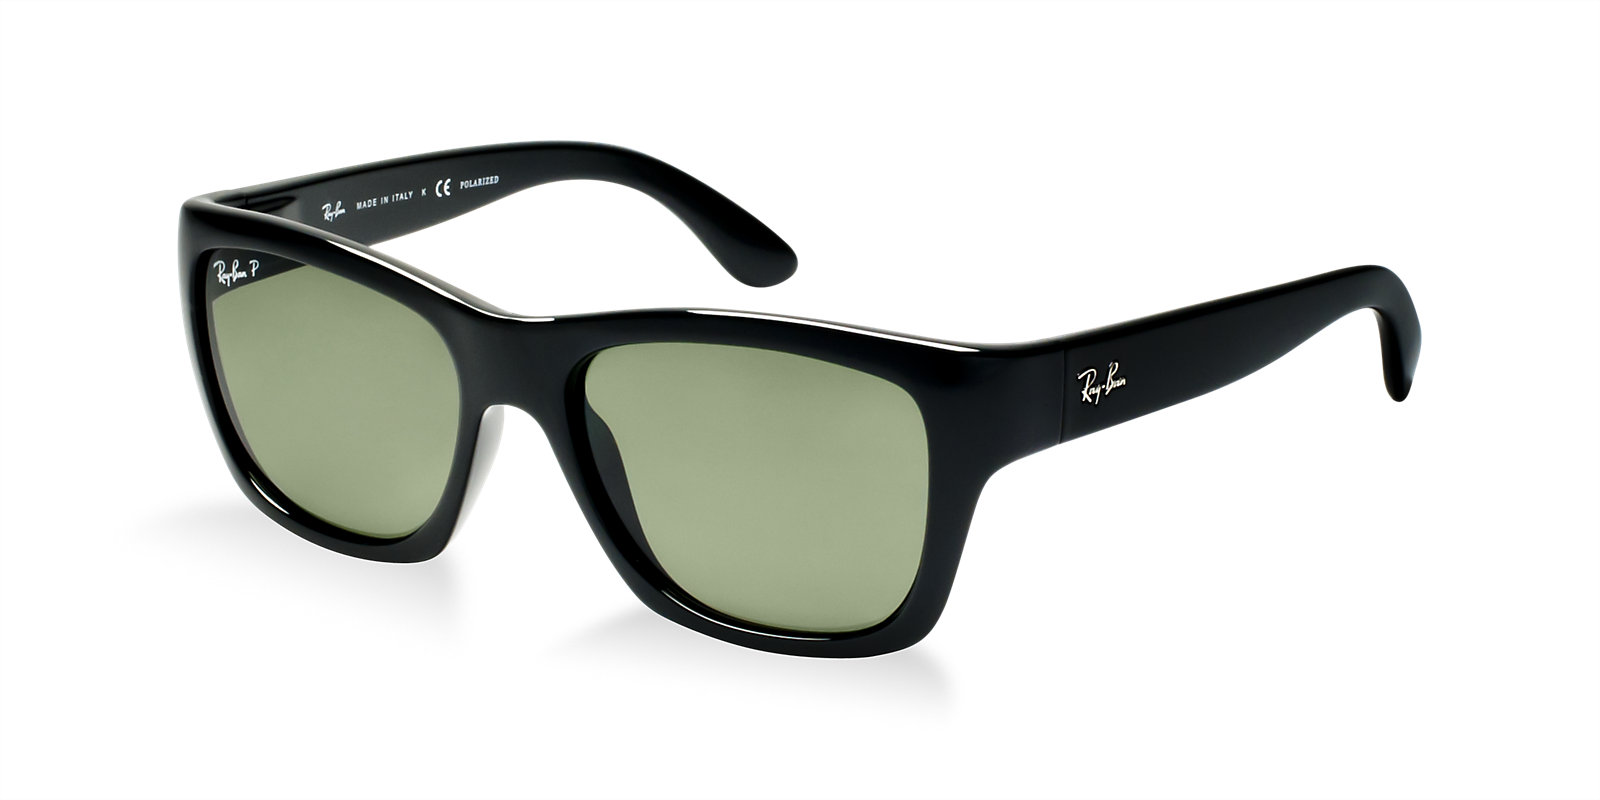 4c397100c2 Ray Ban Rb4194 « One More Soul